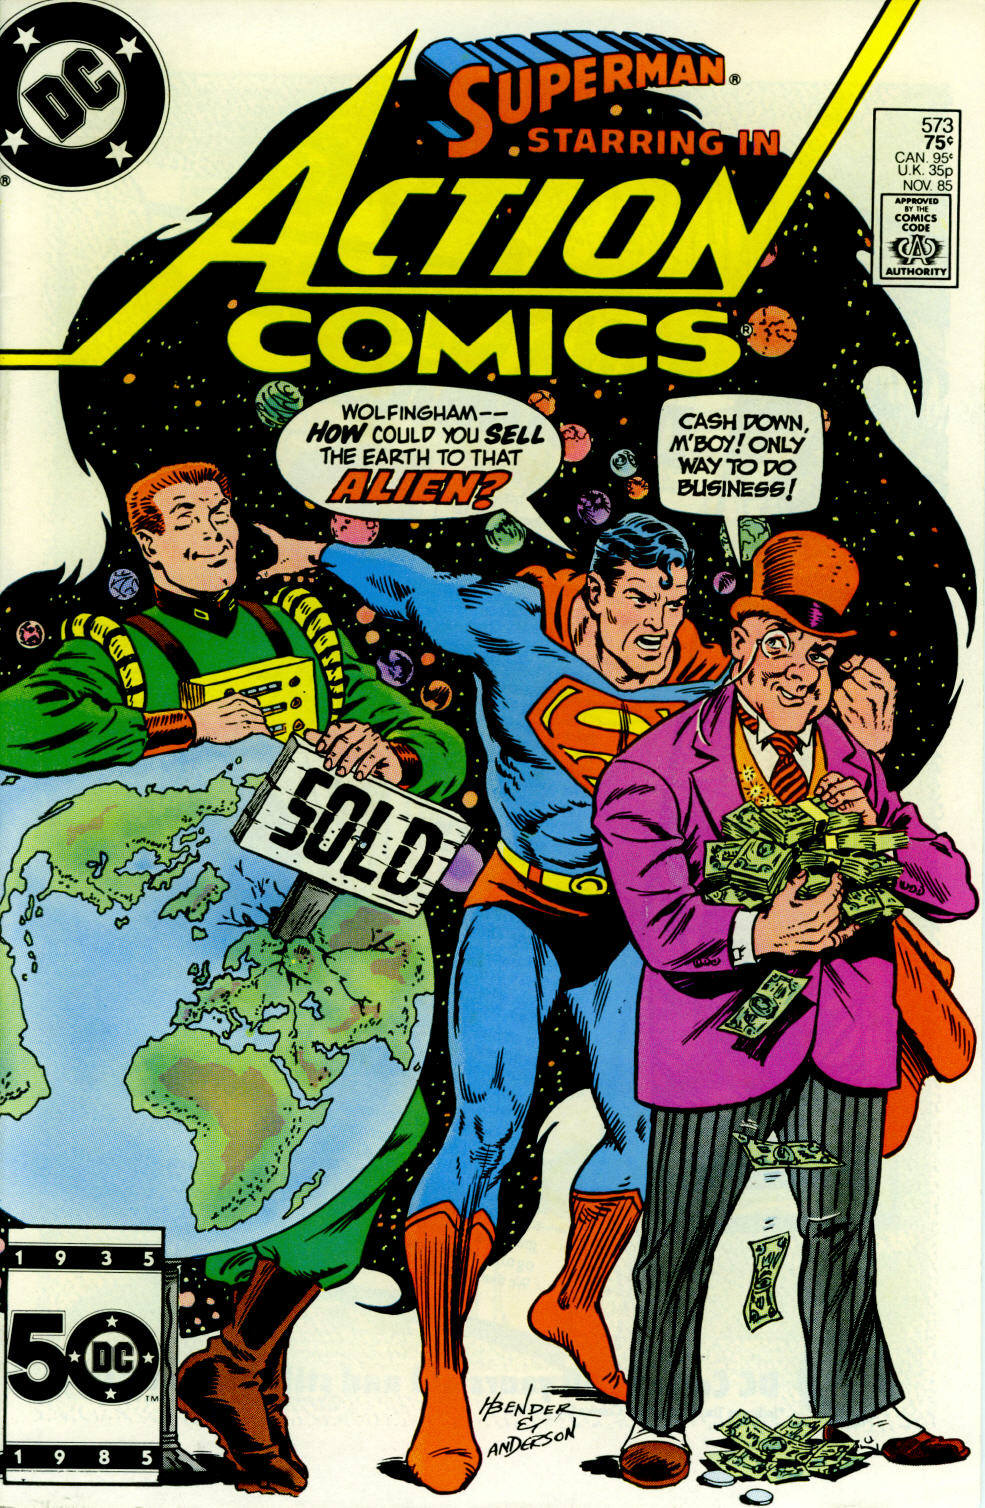 Read online Action Comics (1938) comic -  Issue #573 - 1